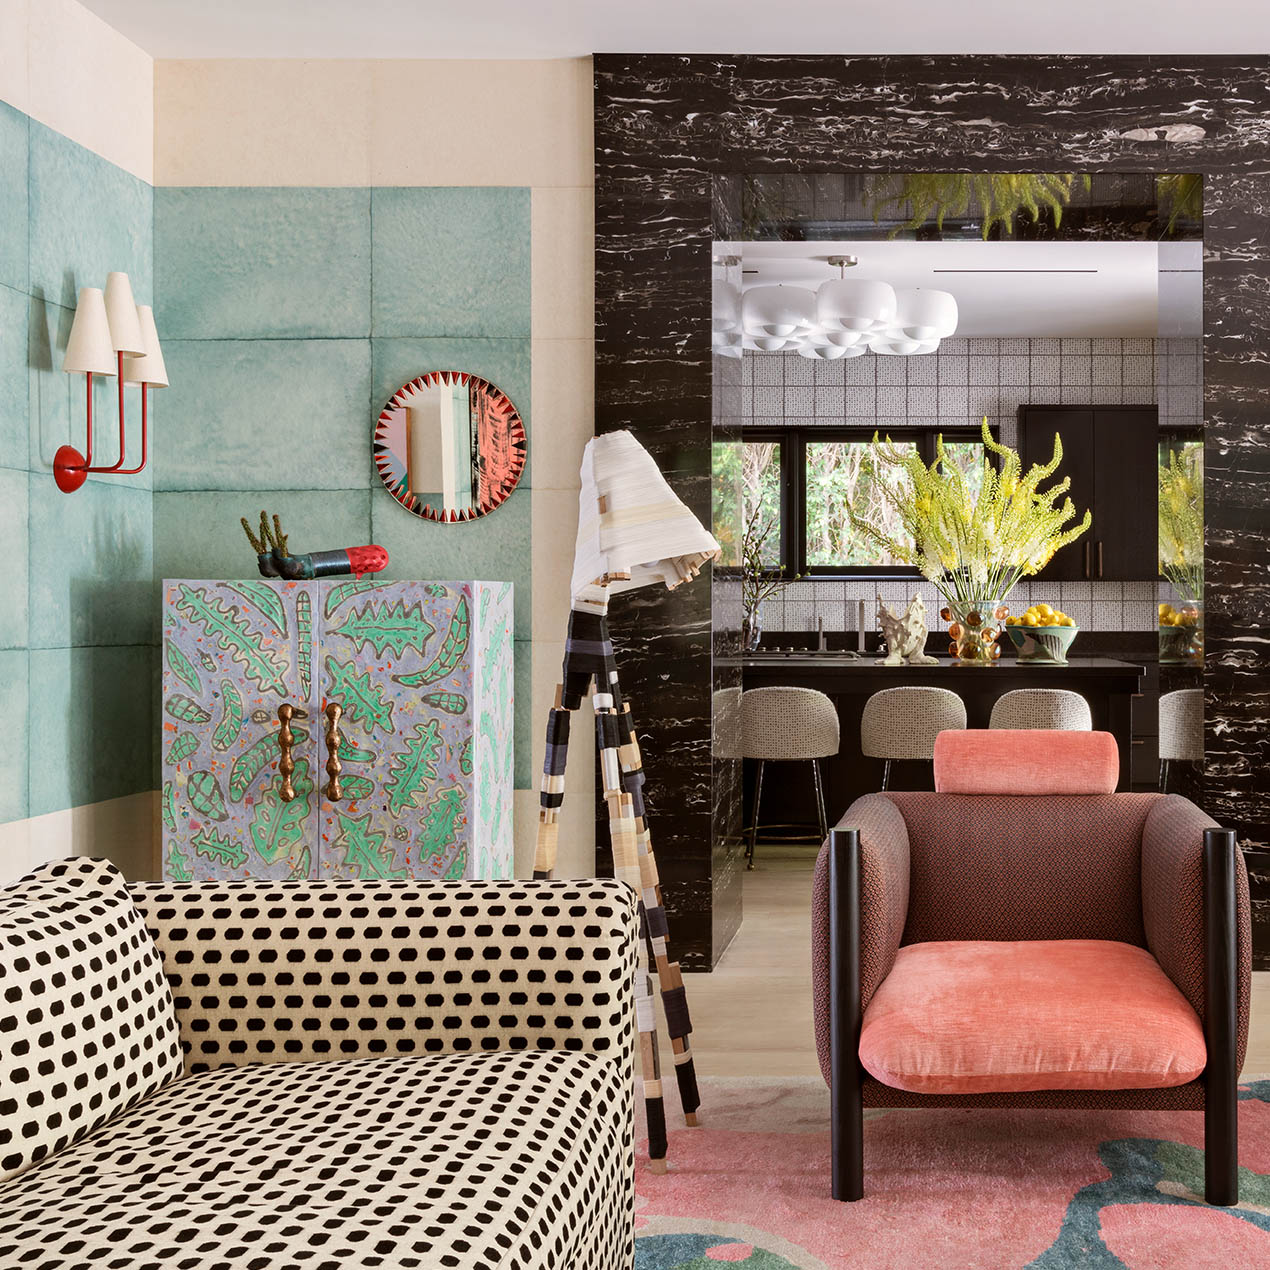 90 Best Images About Kelly Wearstler Interiors On: Kelly Wearstler Online Store: Sites-KellyWearstler-Site